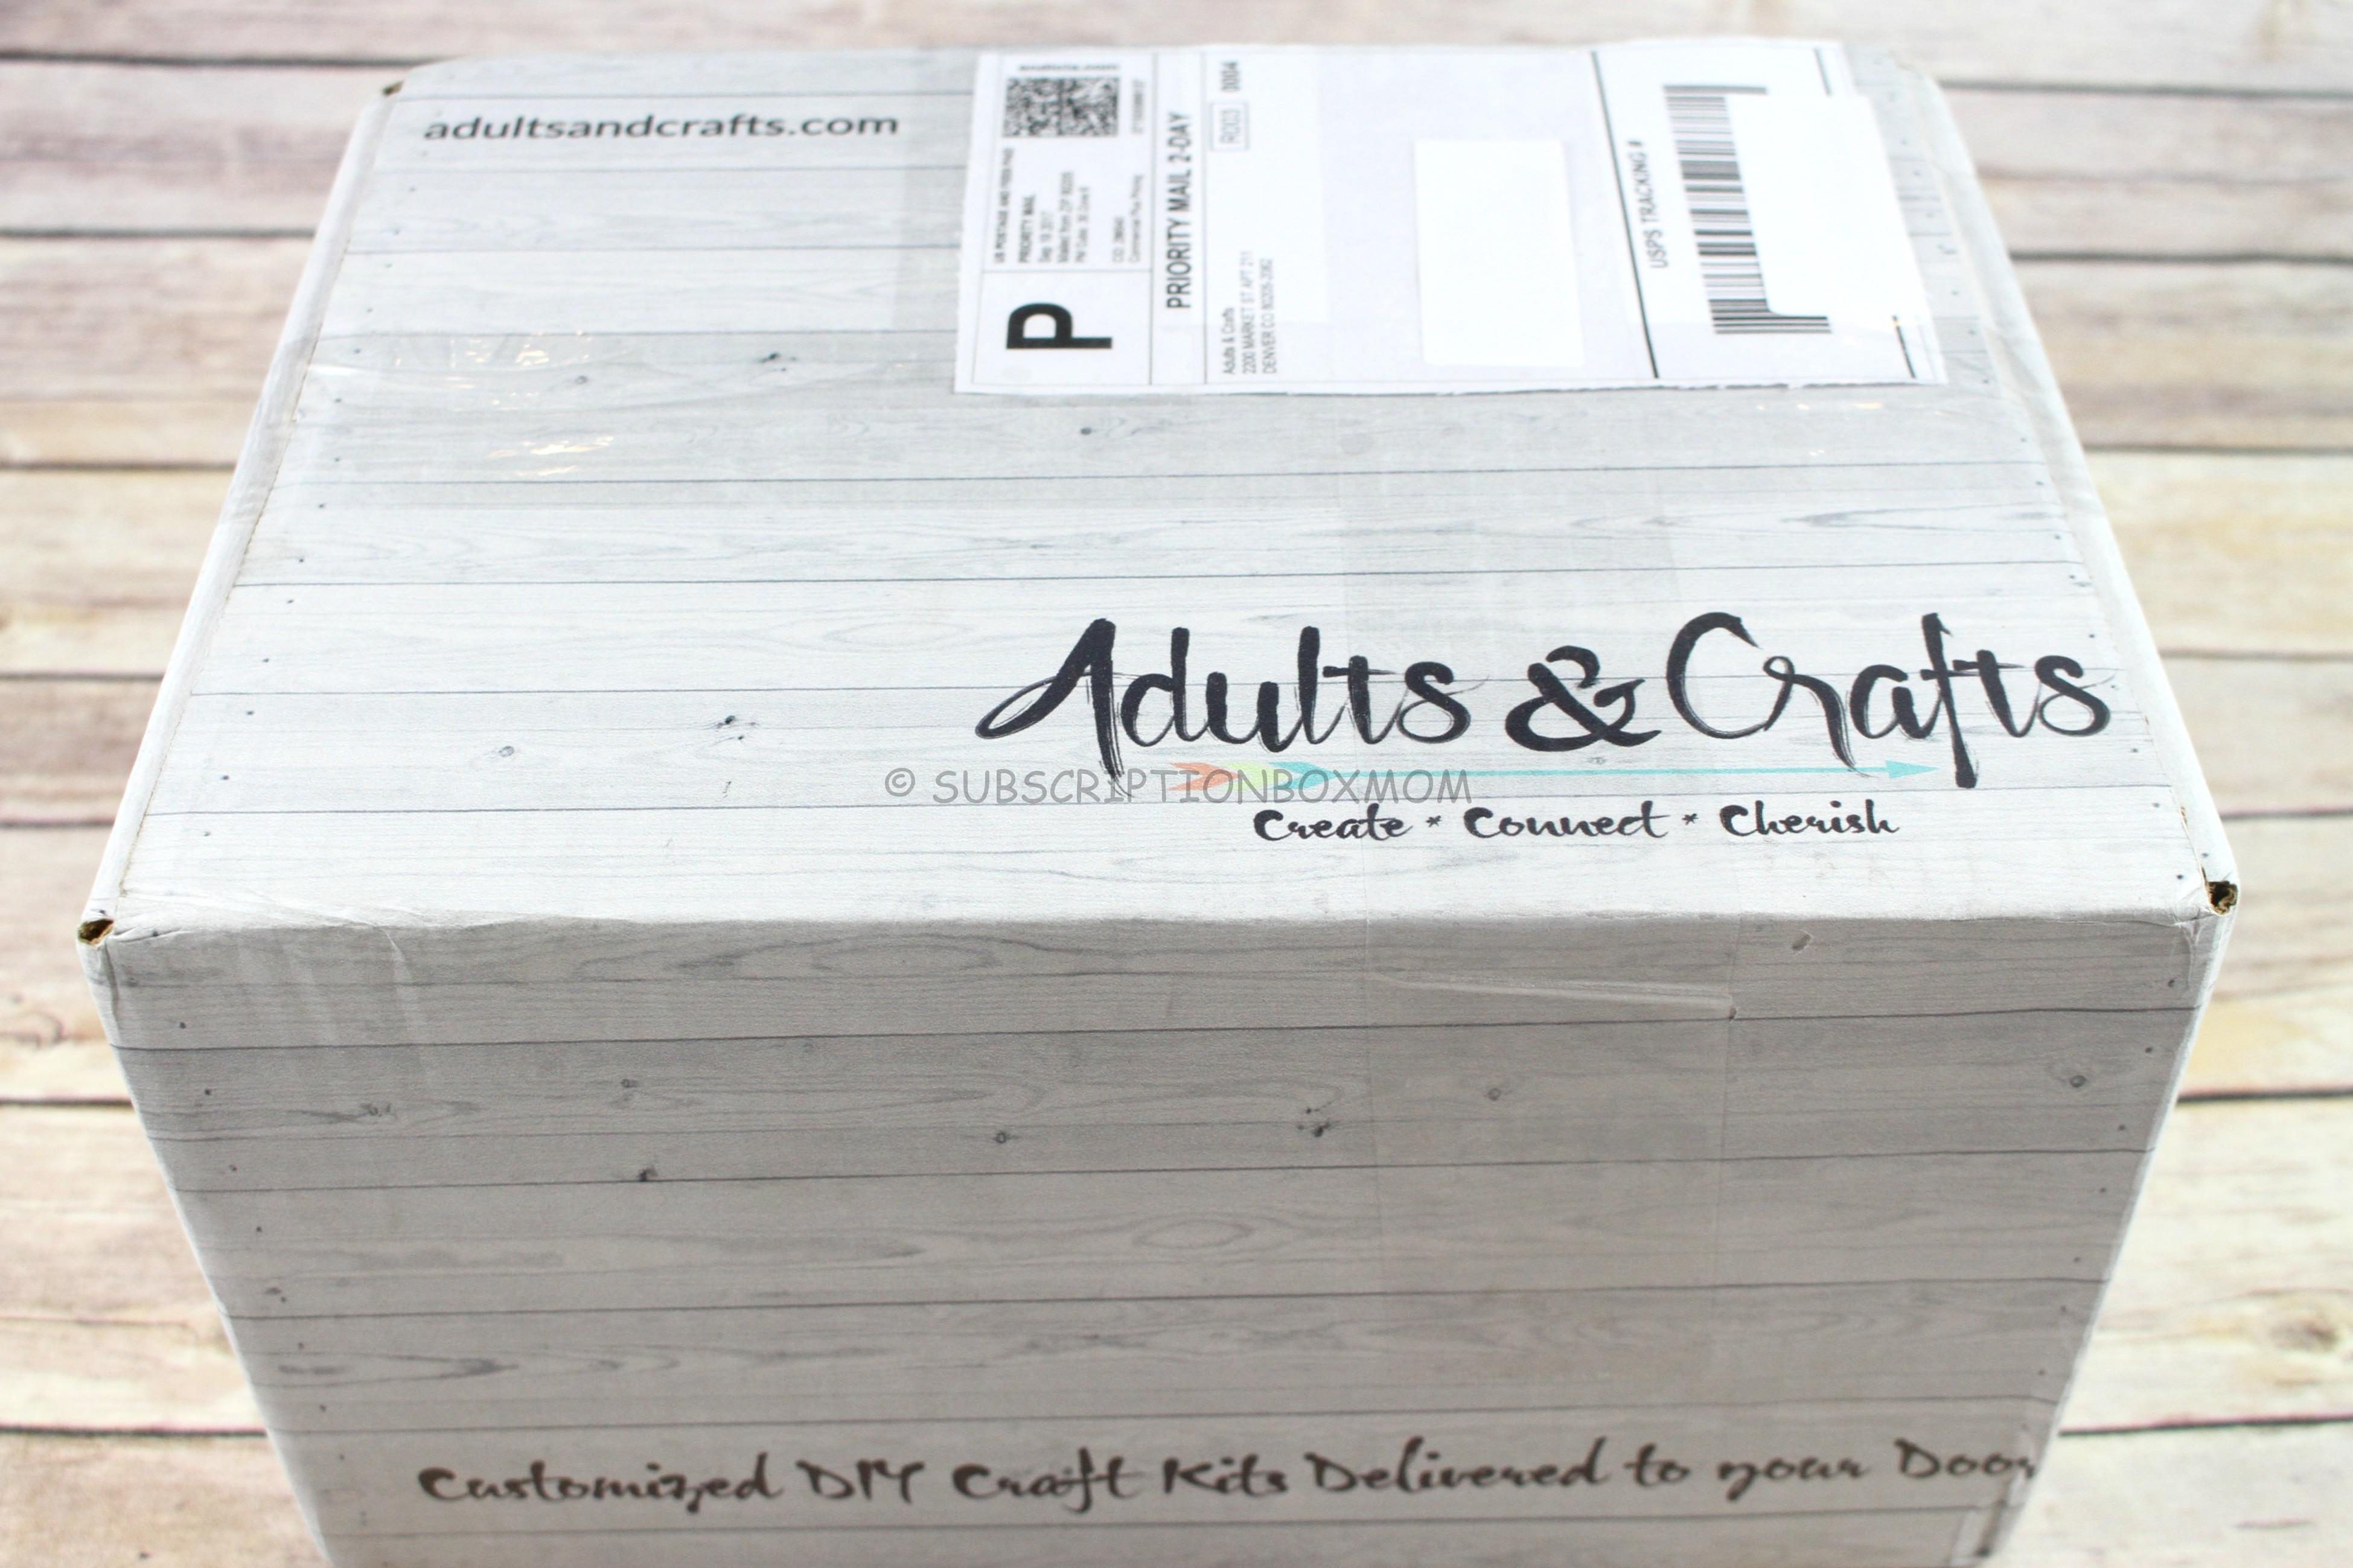 Adults crafts september 2017 review coupon for Craft subscription box for adults